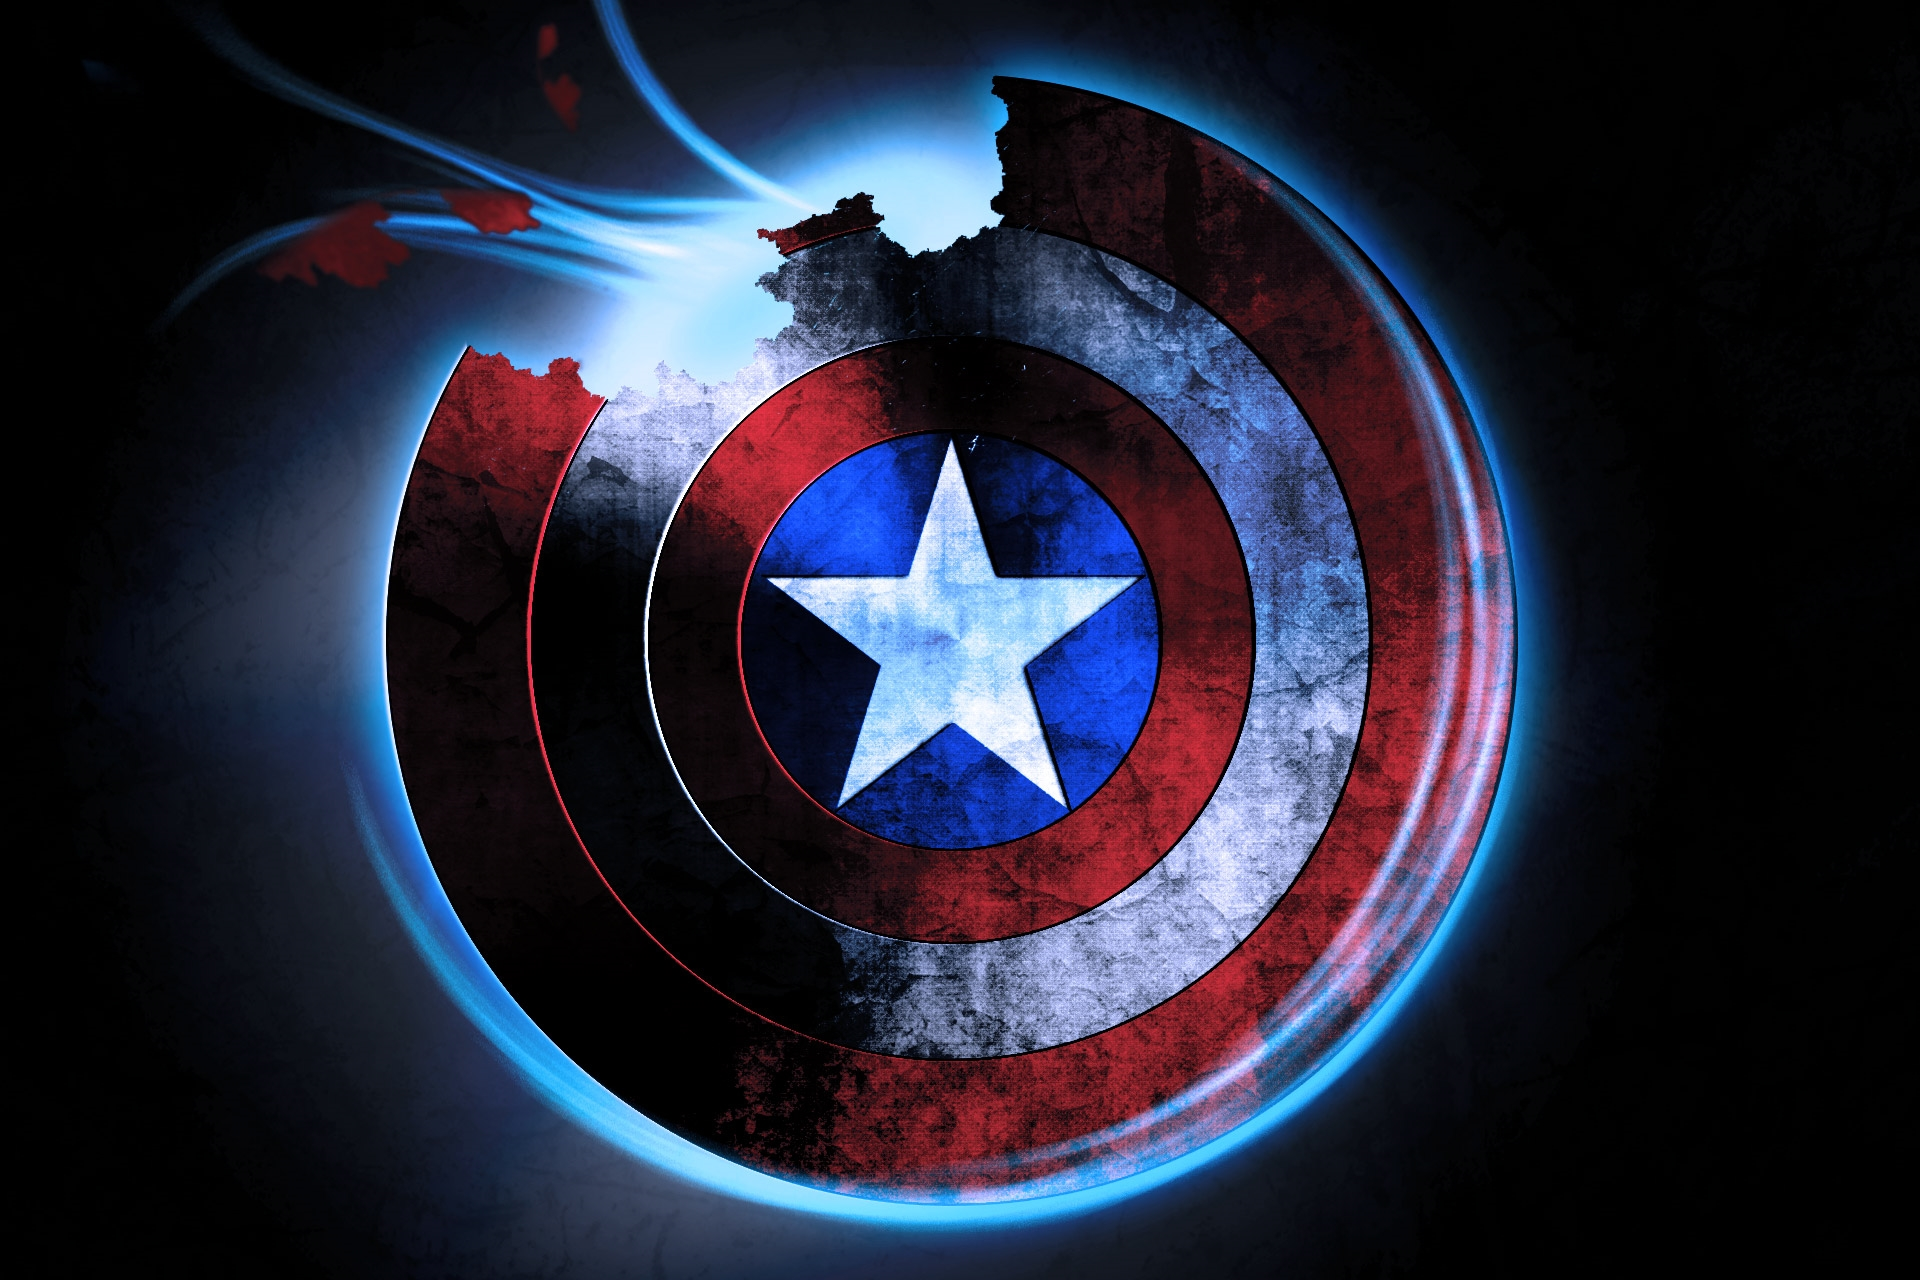 Hd wallpaper of captain america - Hd Wallpaper Of Captain America 36